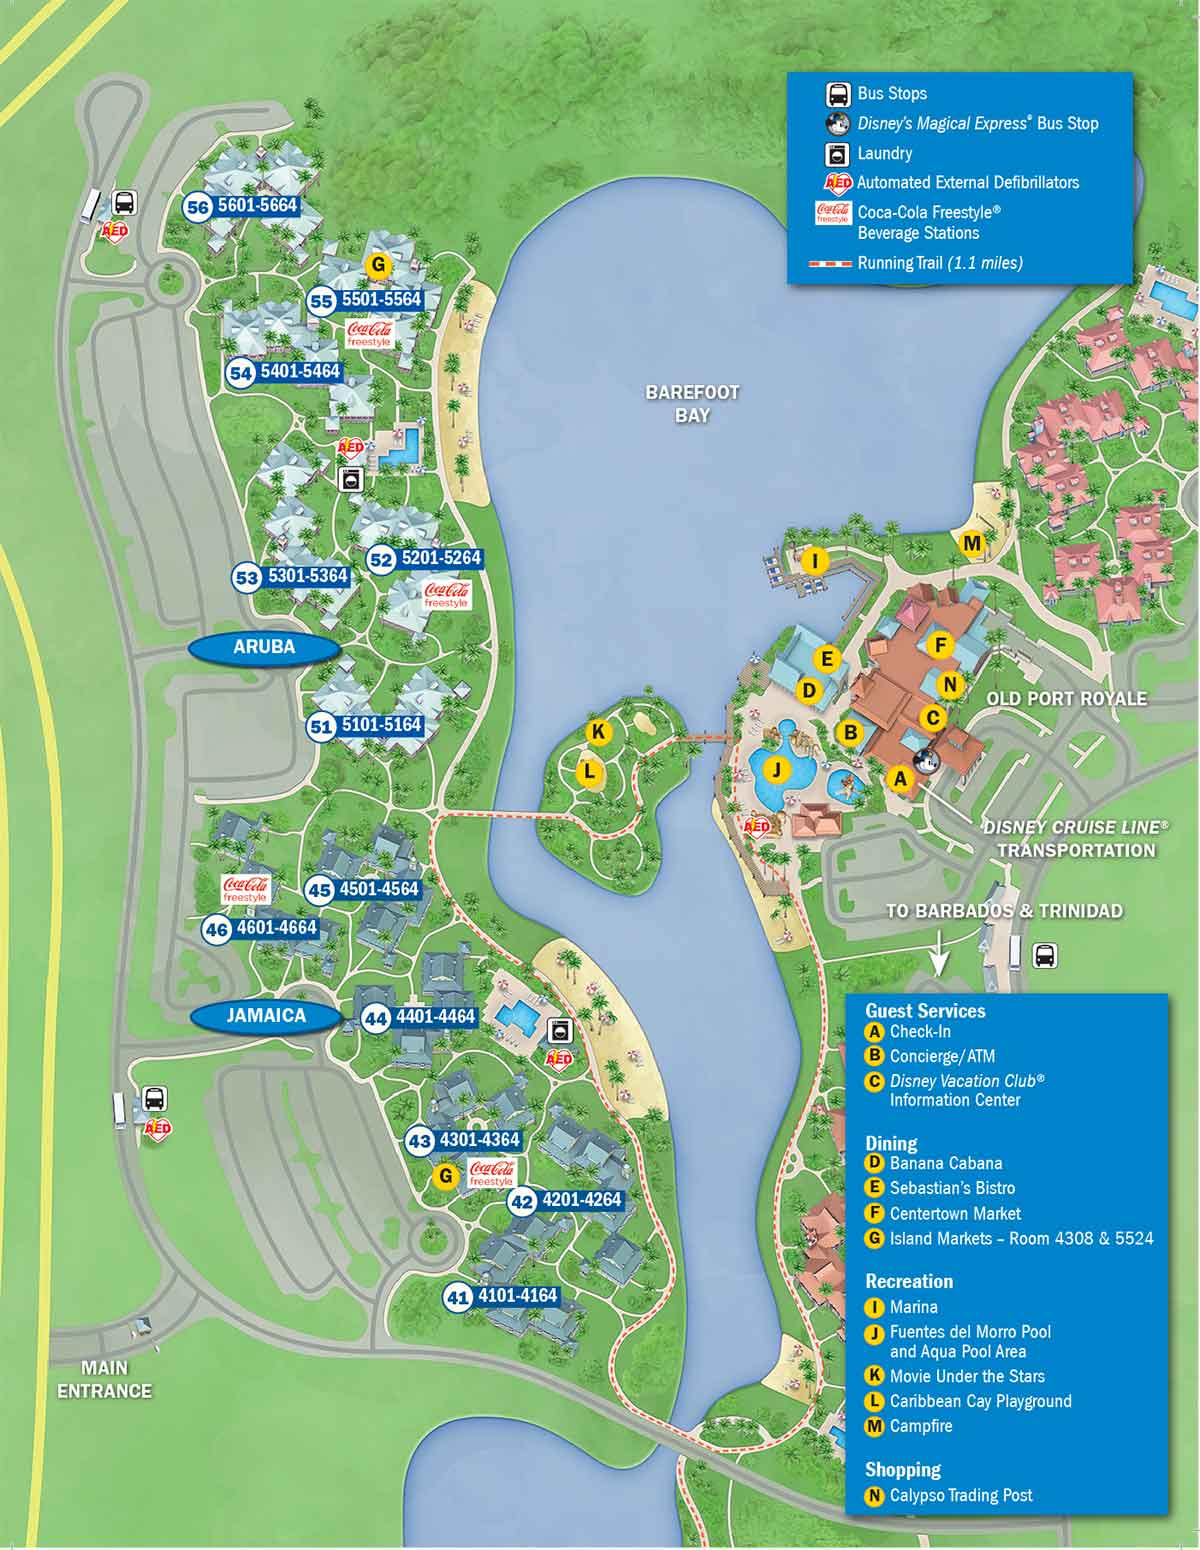 Coronado Springs is a Moderate resort along with Caribbean Beach and Port Orleans Riverside and French Quarter. Standard rooms are $5/night more expensive than the other three Moderates, running between $ and $ per night. From there, Coronado offers Water View ($ – $), King Bed ($.